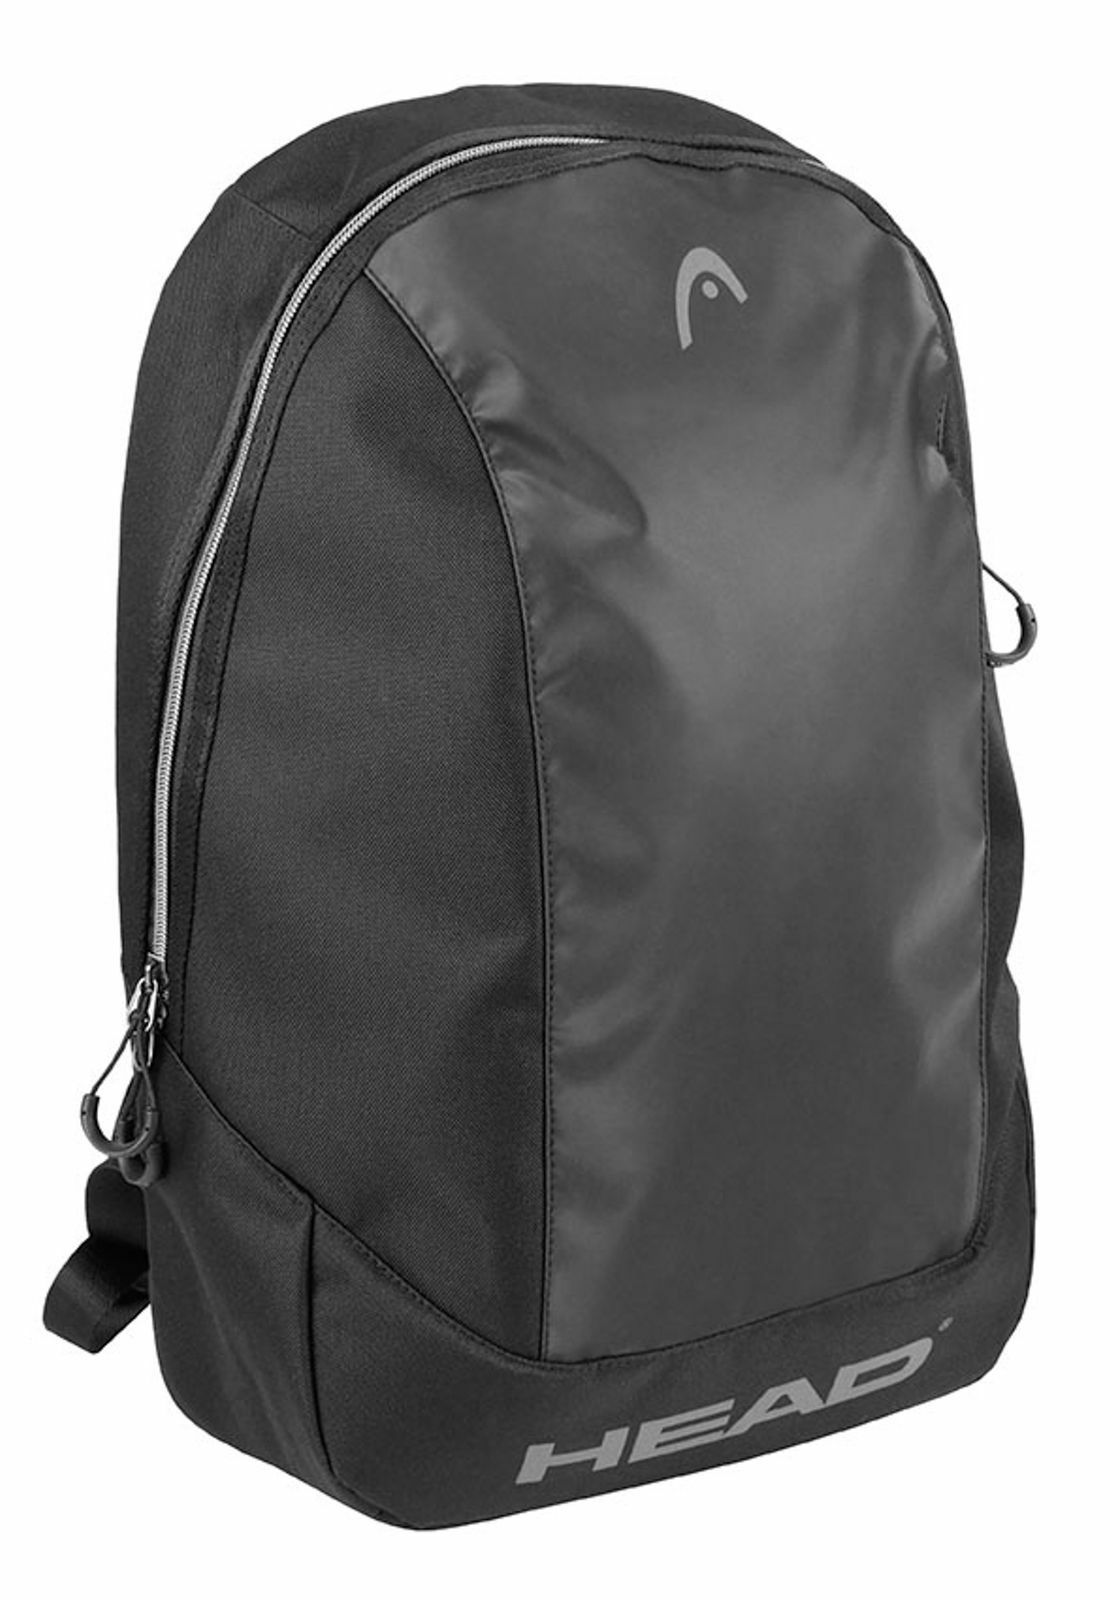 online store 9a3eb e8830 HEAD Zaino Zaino Zaino Start Backpack Basic nero 229bca